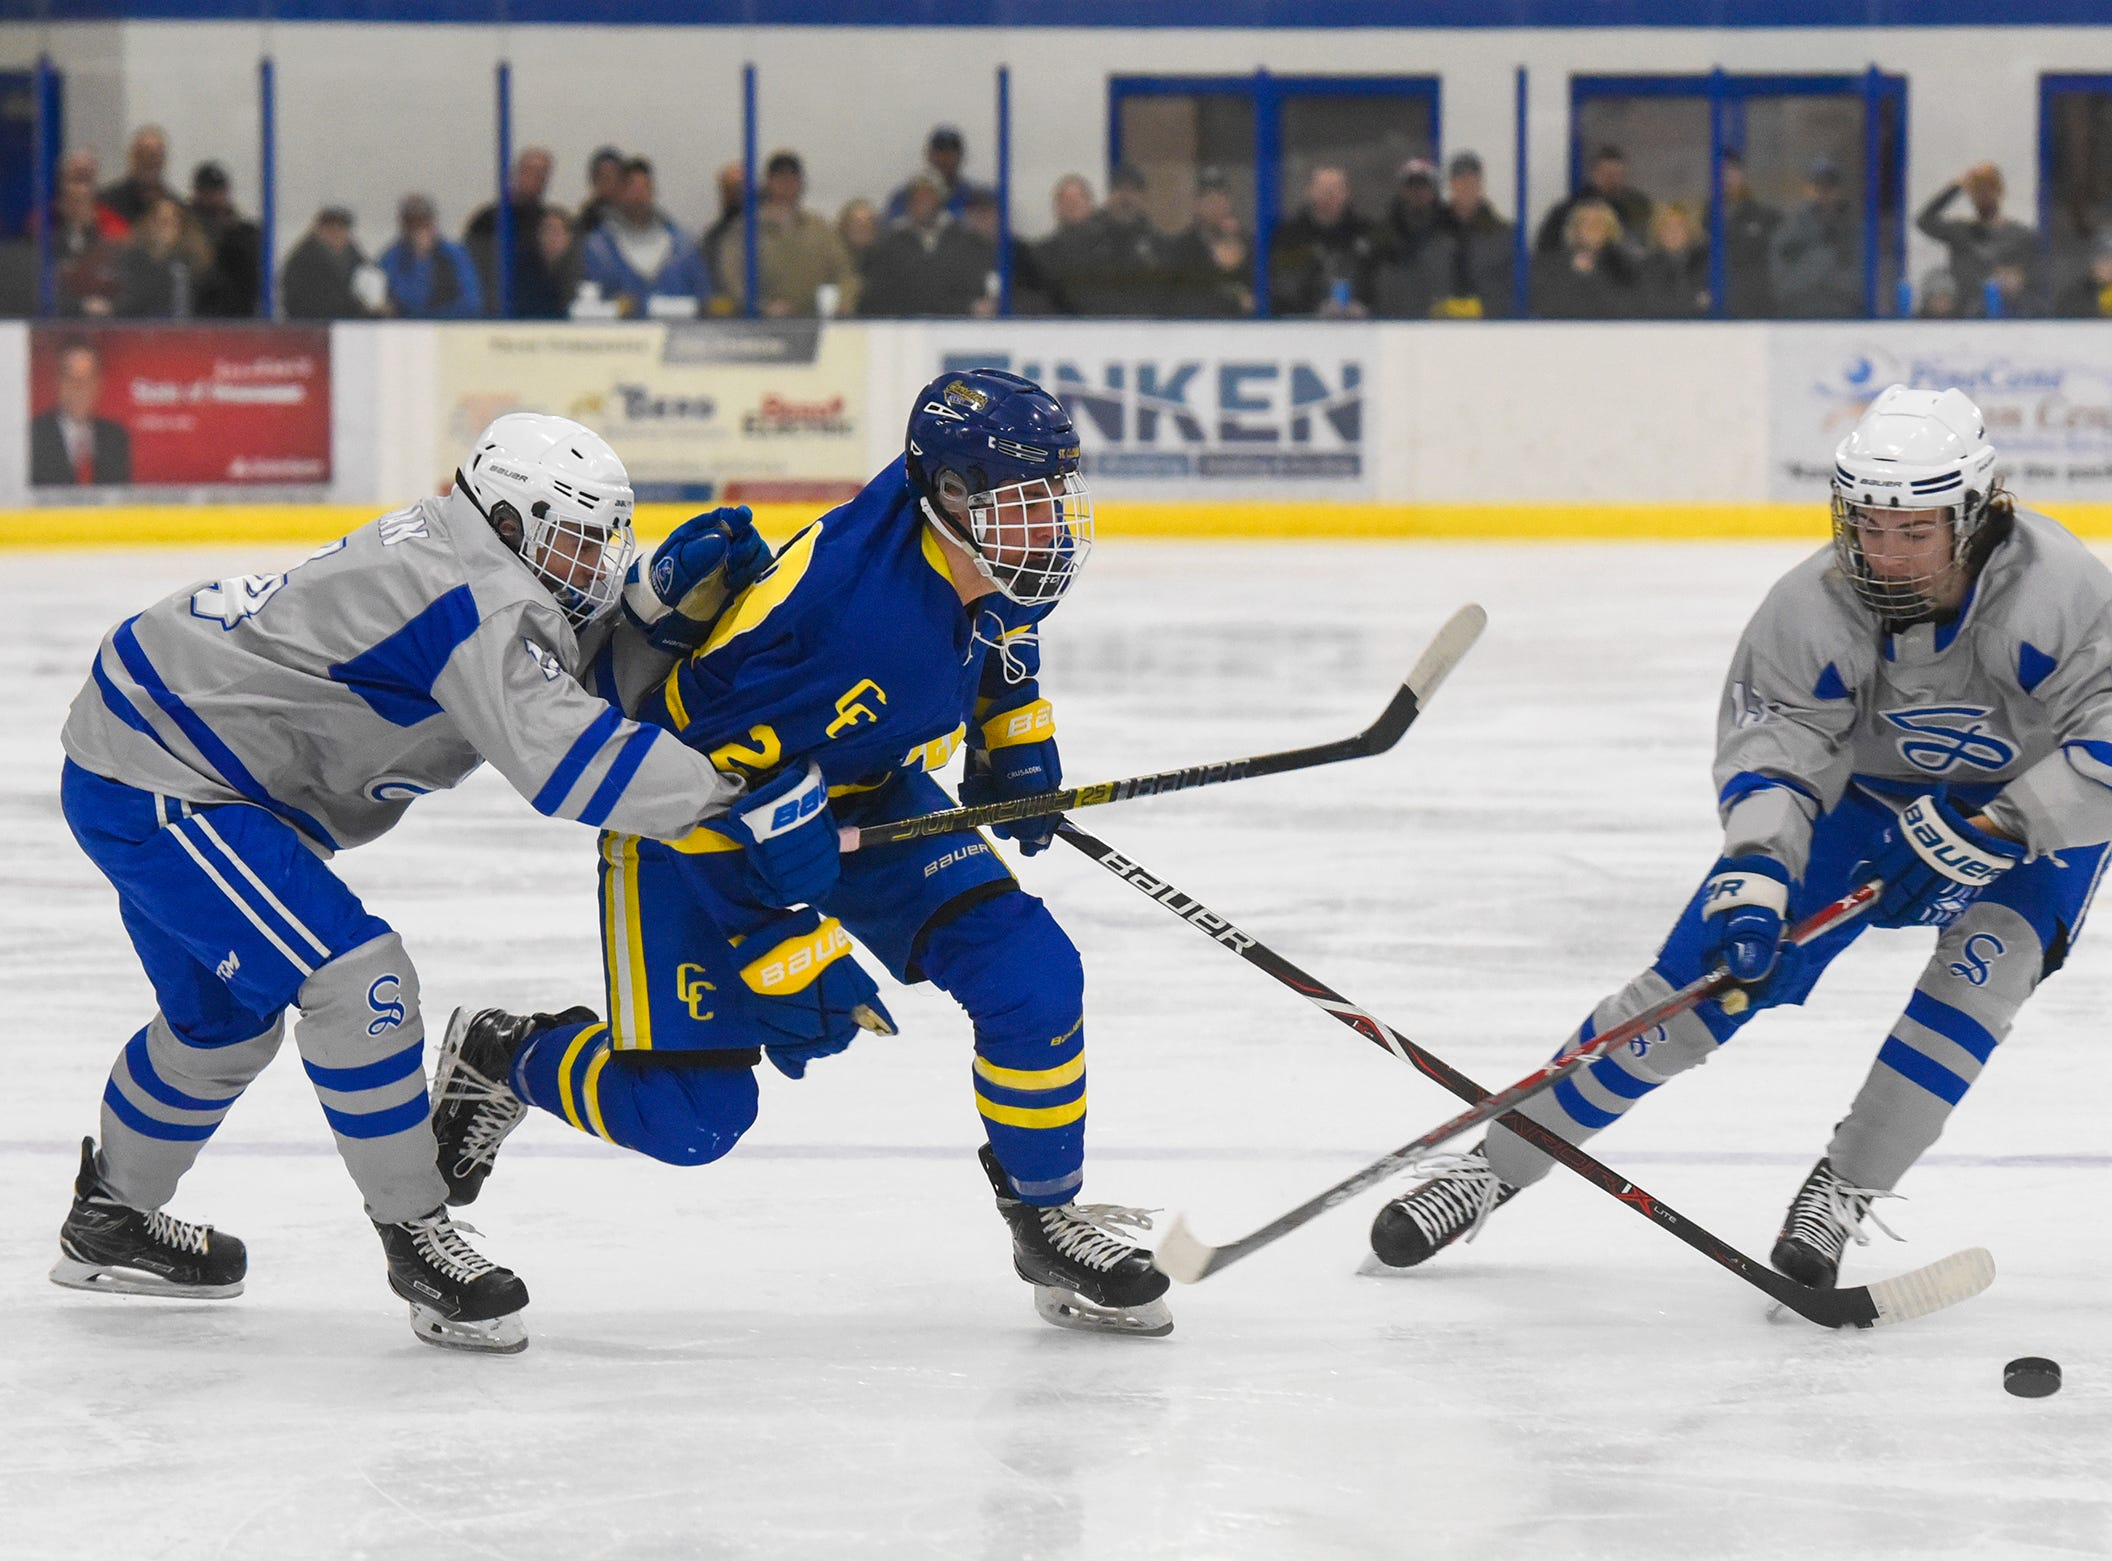 Cathedral's Jackson Savoie cuts between Austin Adelman and Tyan Zulkosky of Sartell during the Thursday, Jan. 10, game at Bernicks Arena.